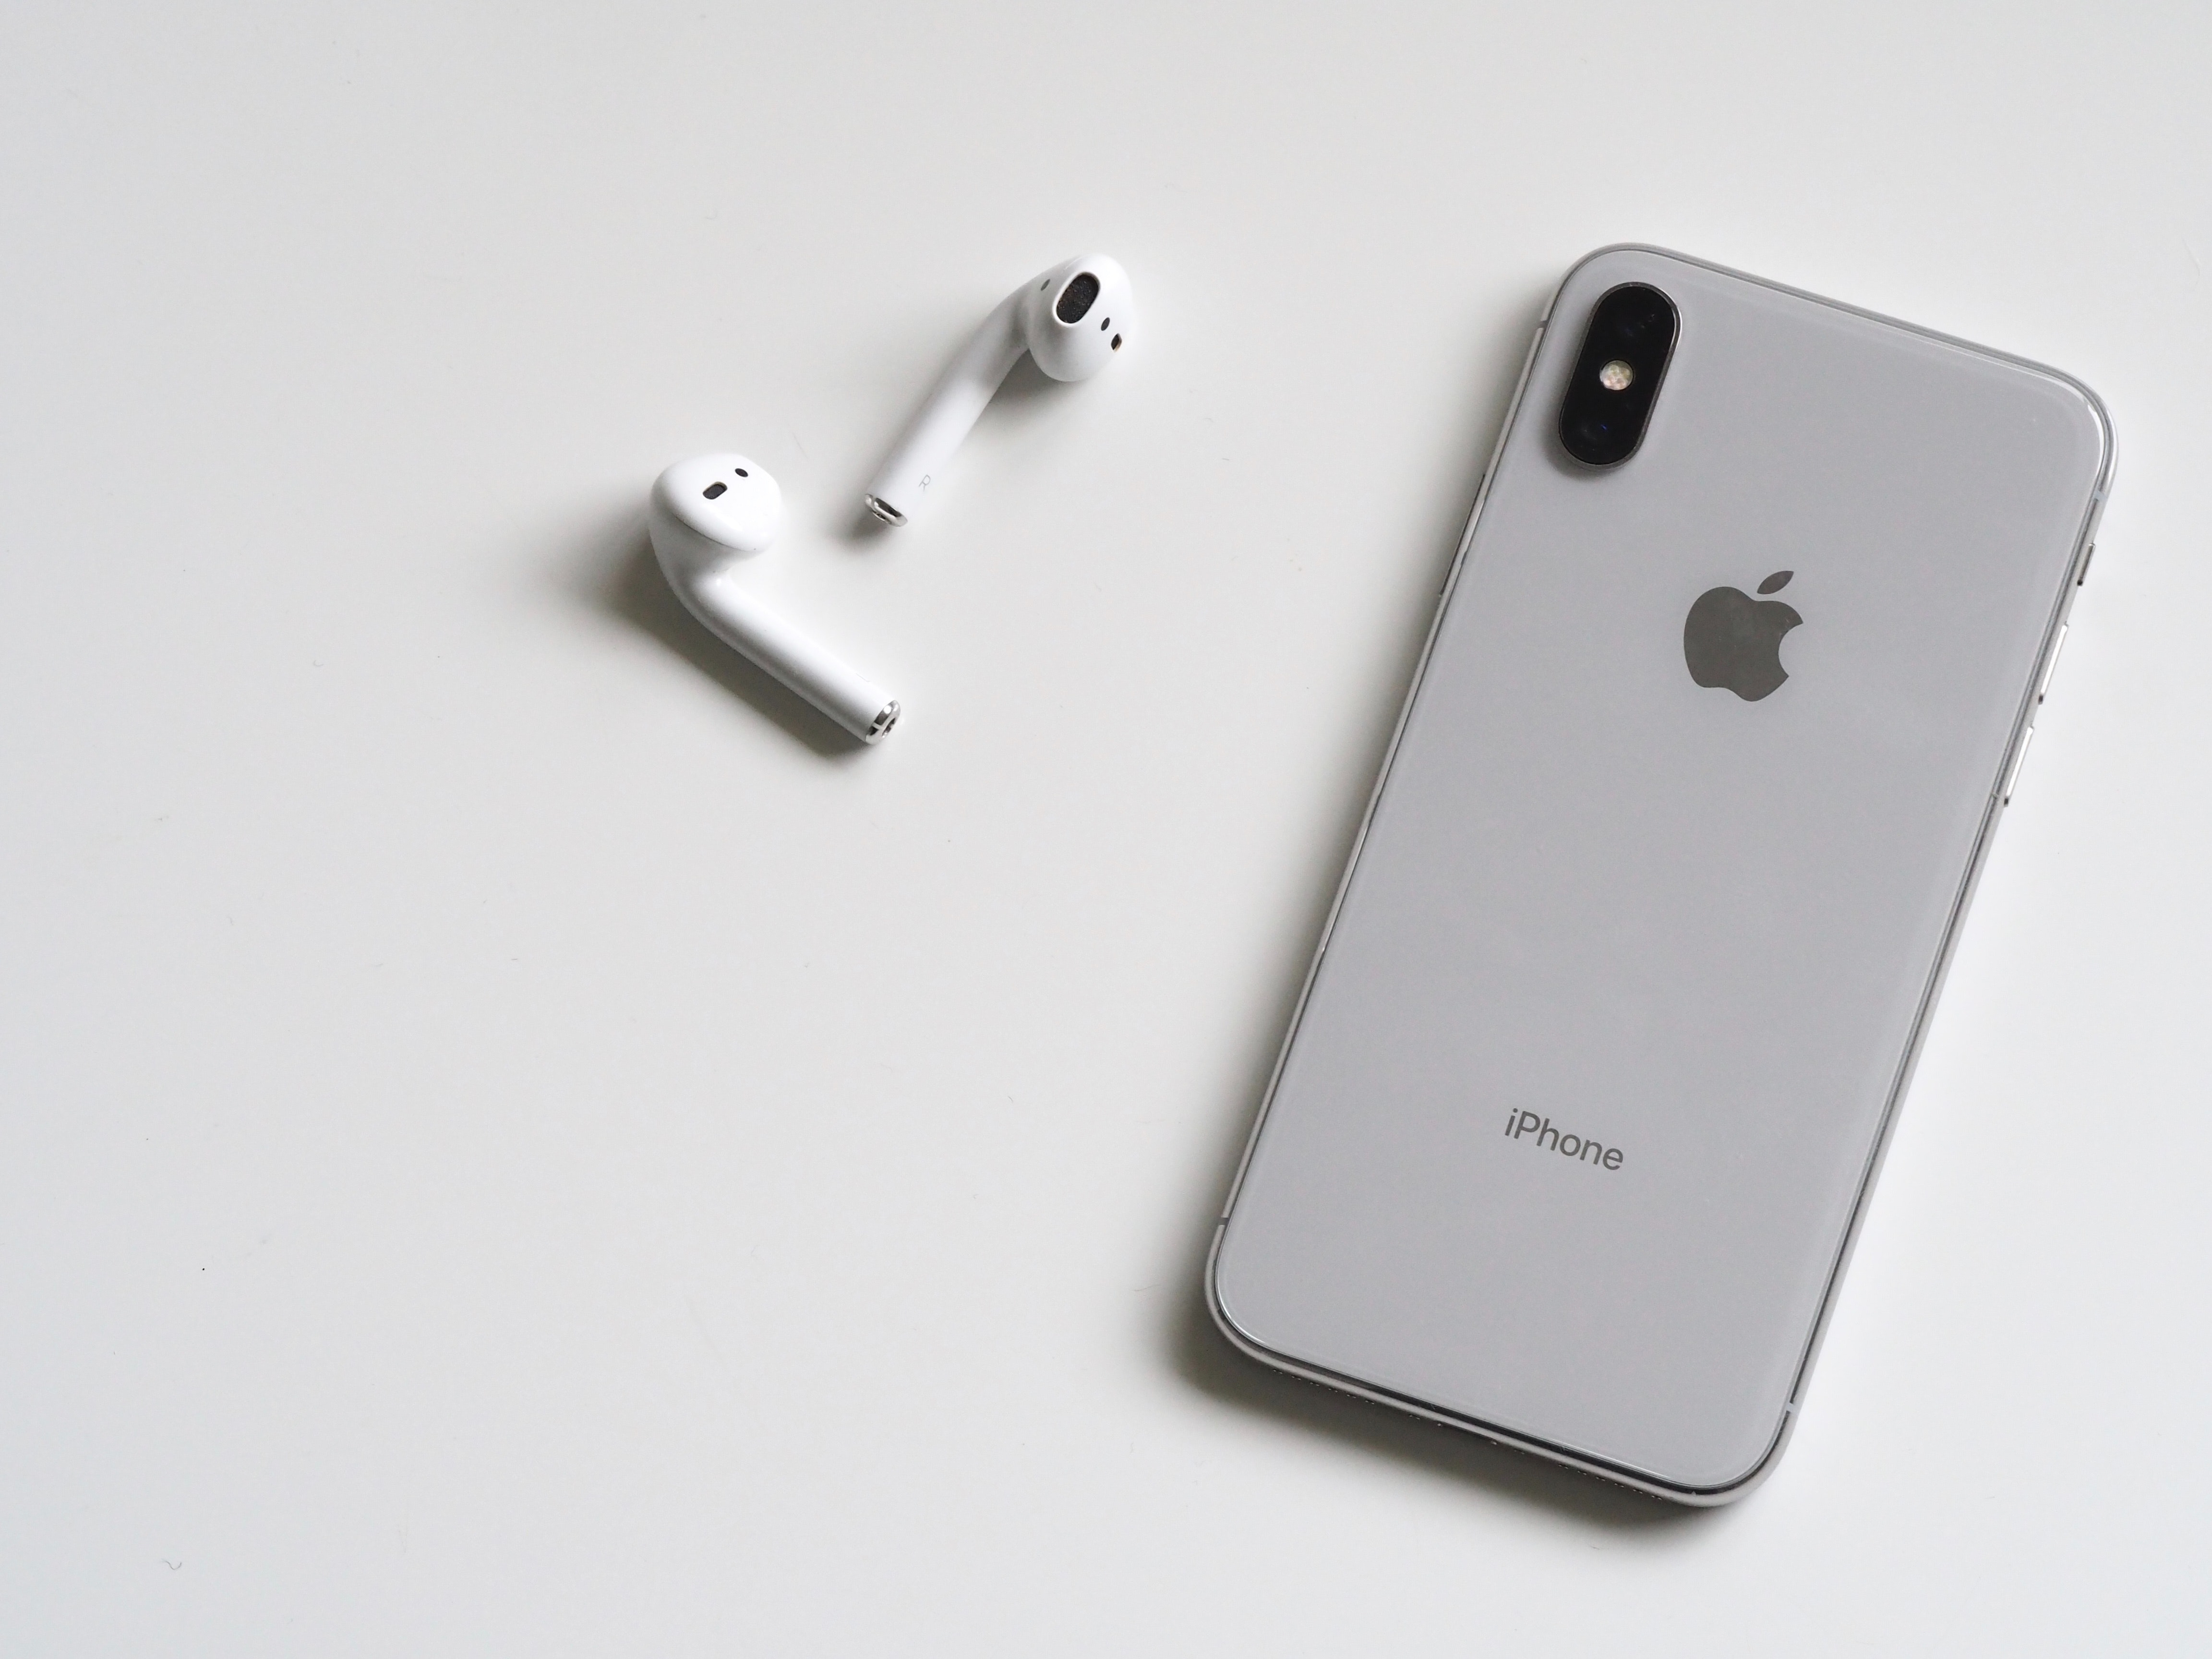 Silver Iphone X With Airpods, Apple device, Mobile phone, Technology, Smartphone, HQ Photo